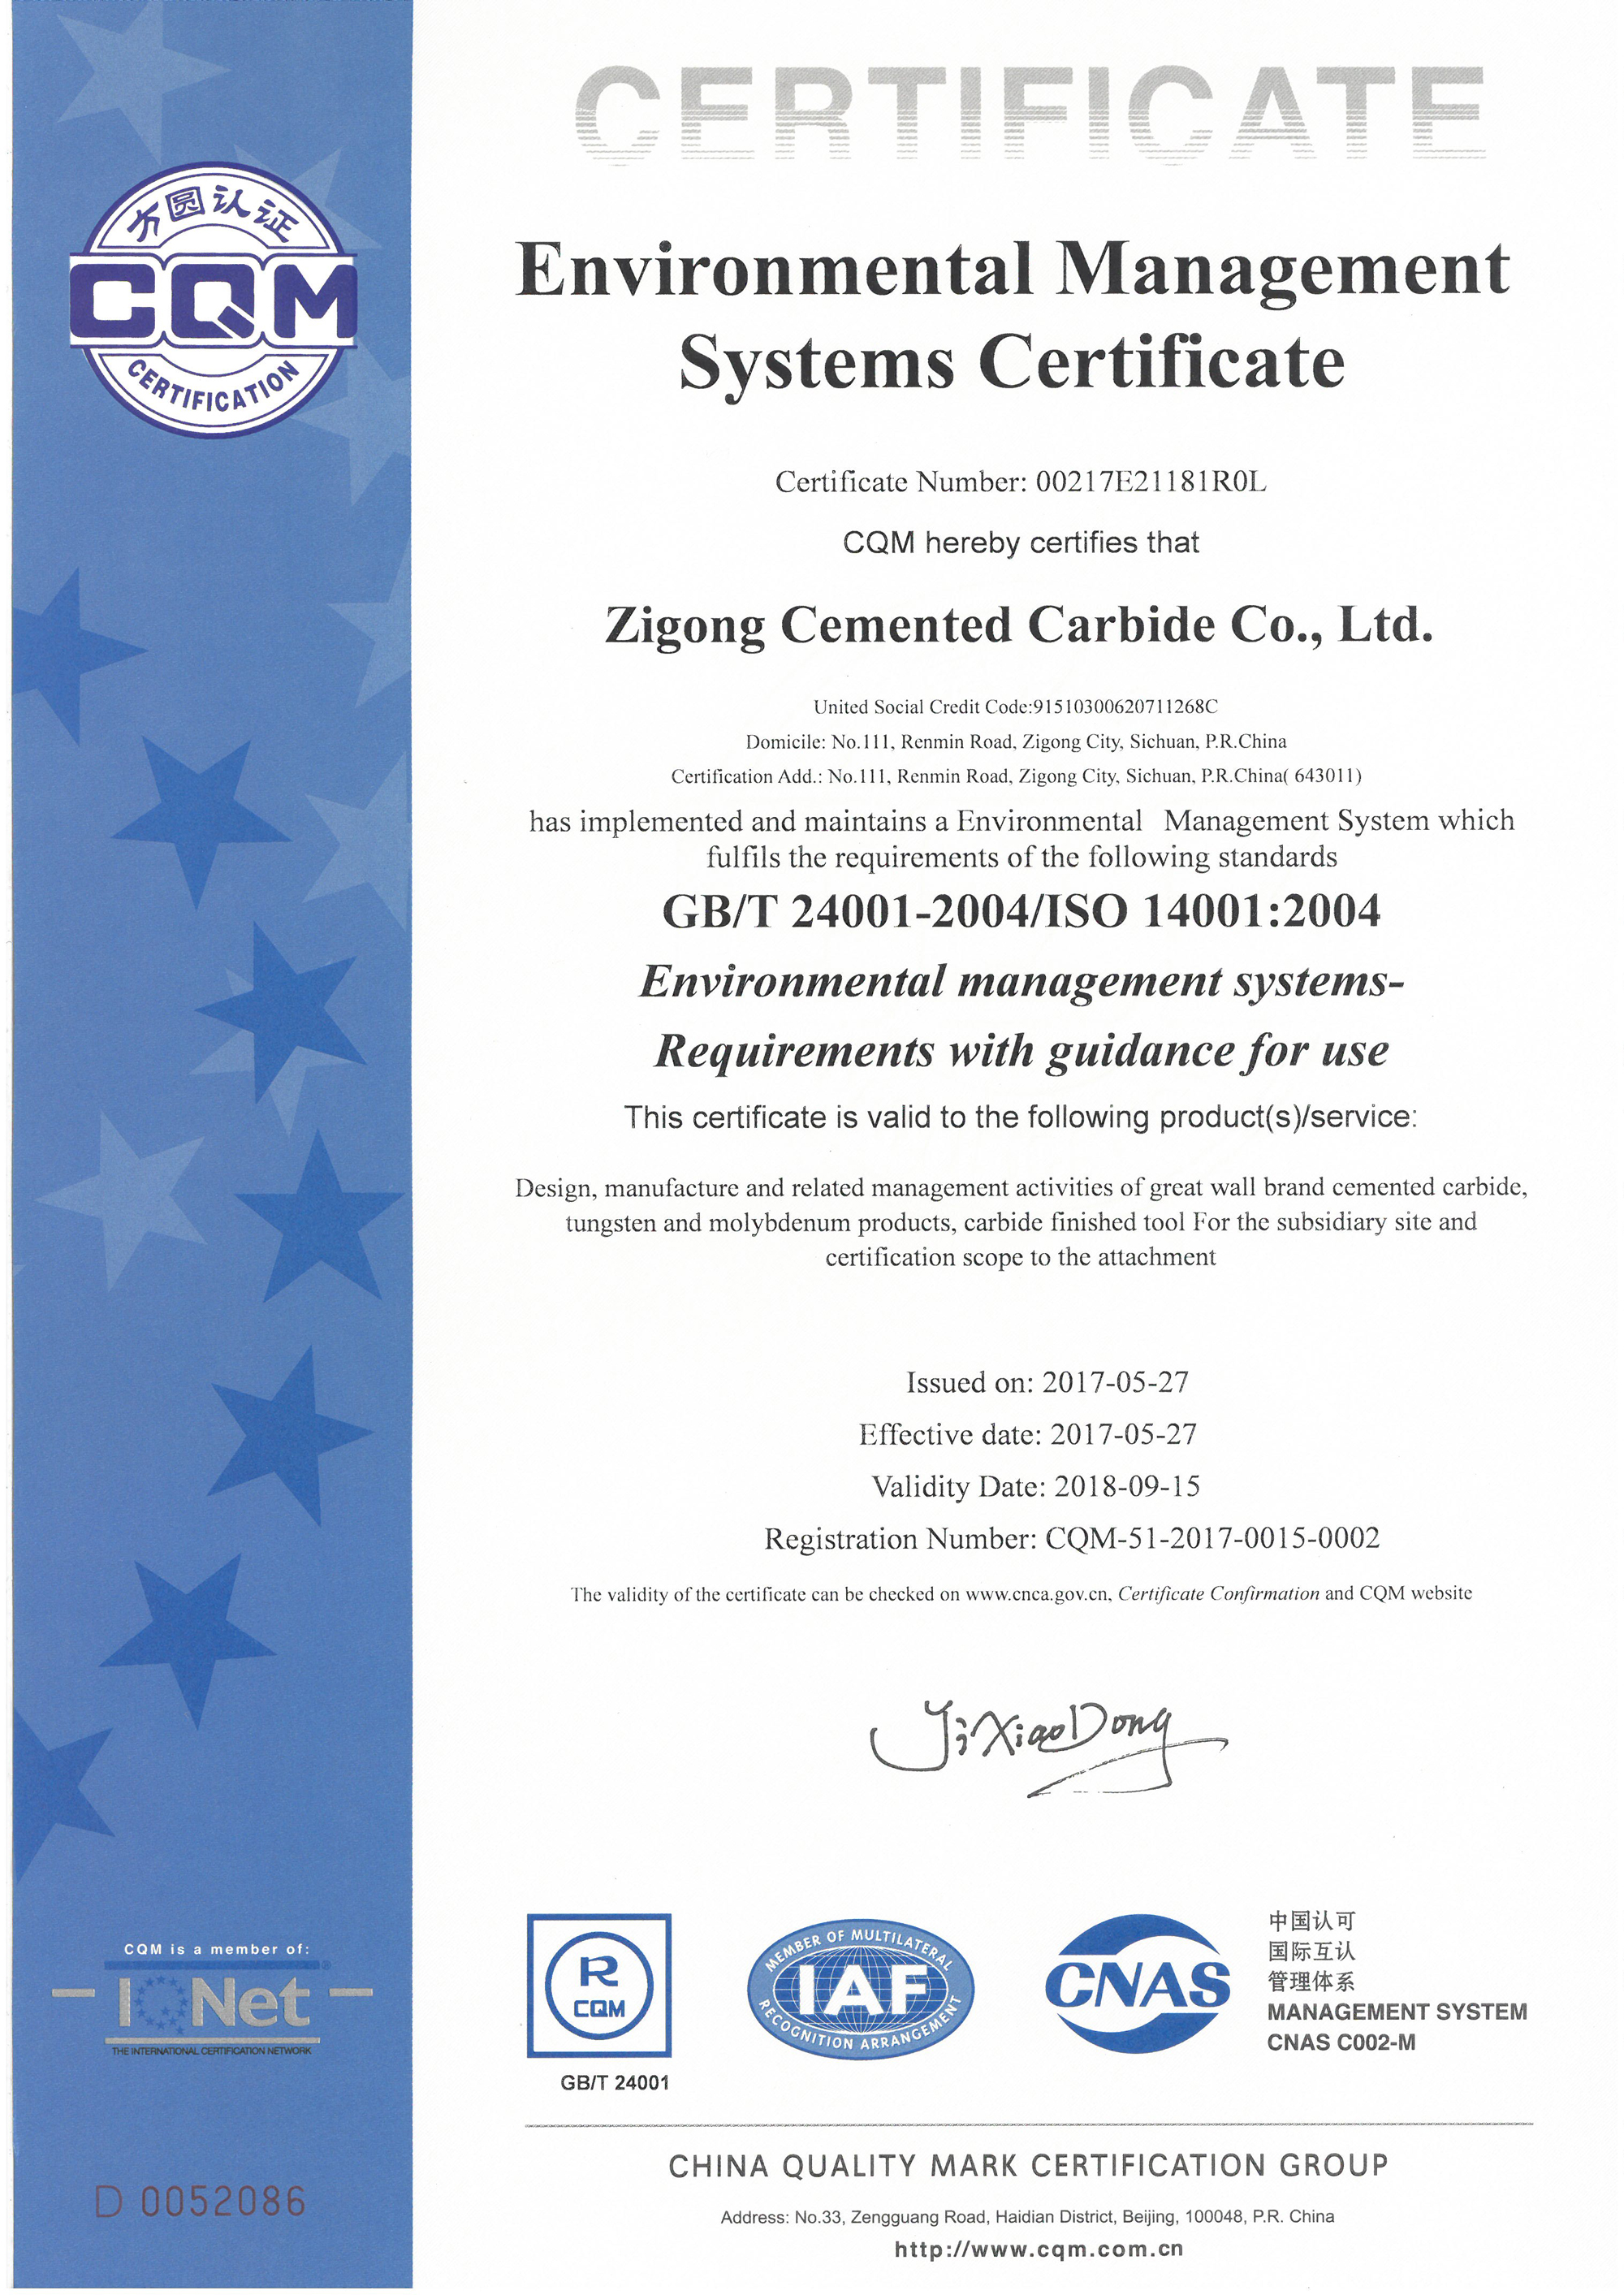 Quality Certification | Zigong International Marketing, LLC